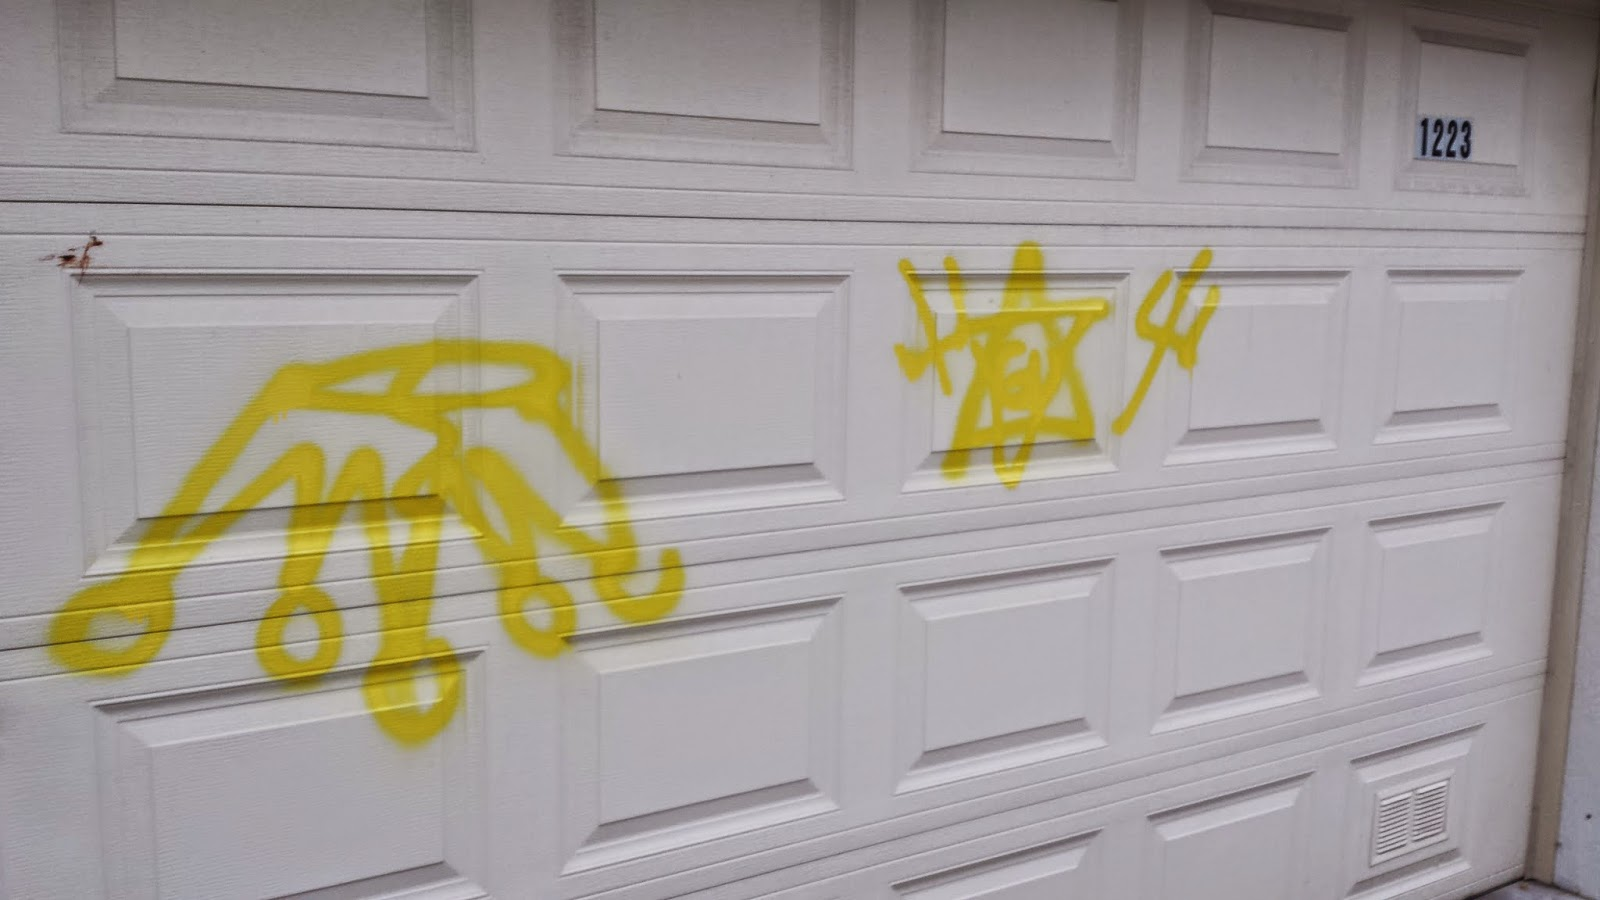 Cwb chicago painting the town lakeview garage damage linked to symbols typical of the gangster disciples street gang on a garage in the 1200 block of roscoe last weekend police believe these tags were placed for shock buycottarizona Choice Image